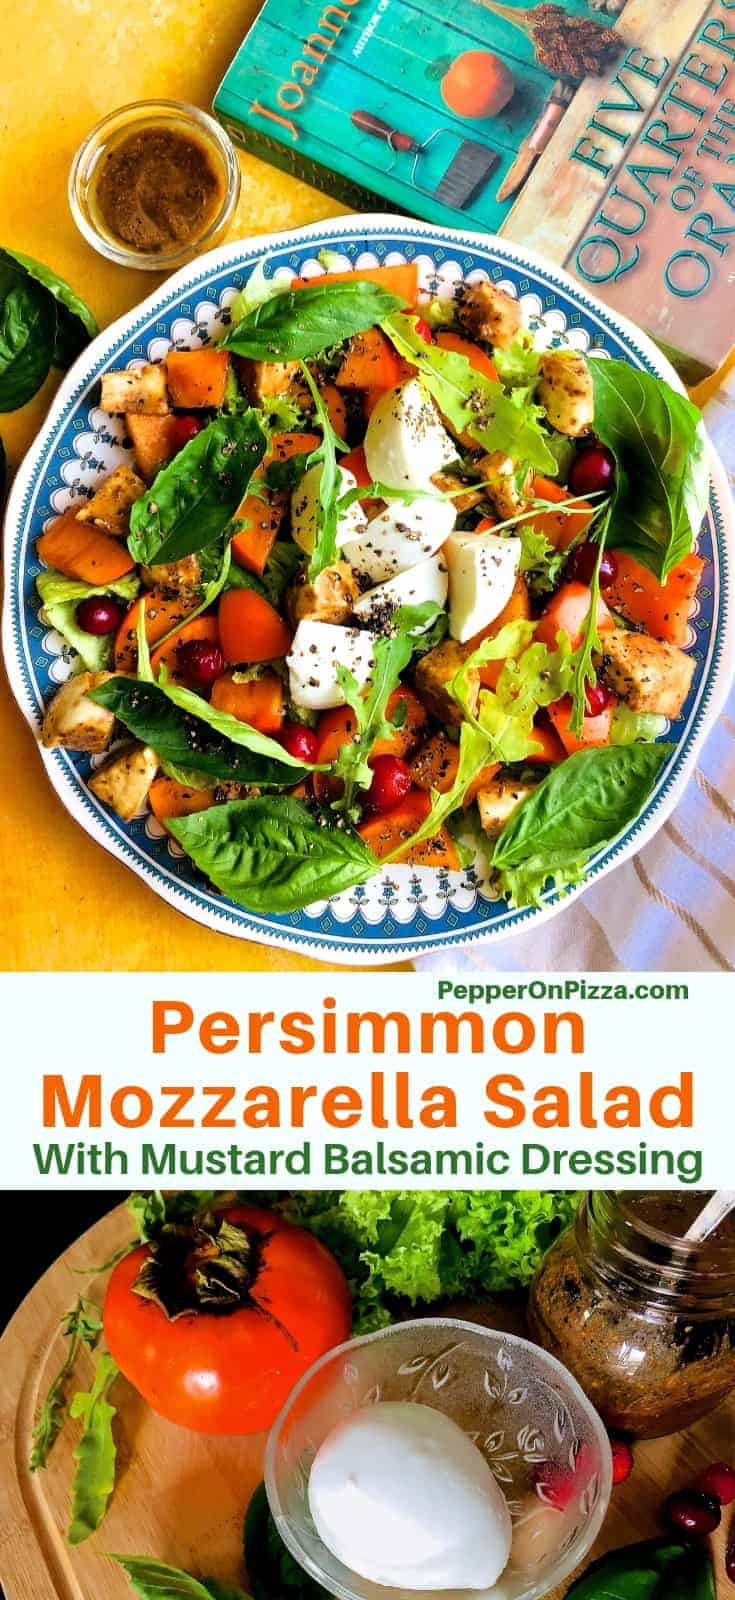 A plate edged in blue heaped with orange, green and white Persimmon Mozzarella Salad with a green and orange book on one side and a brown striped napkin below